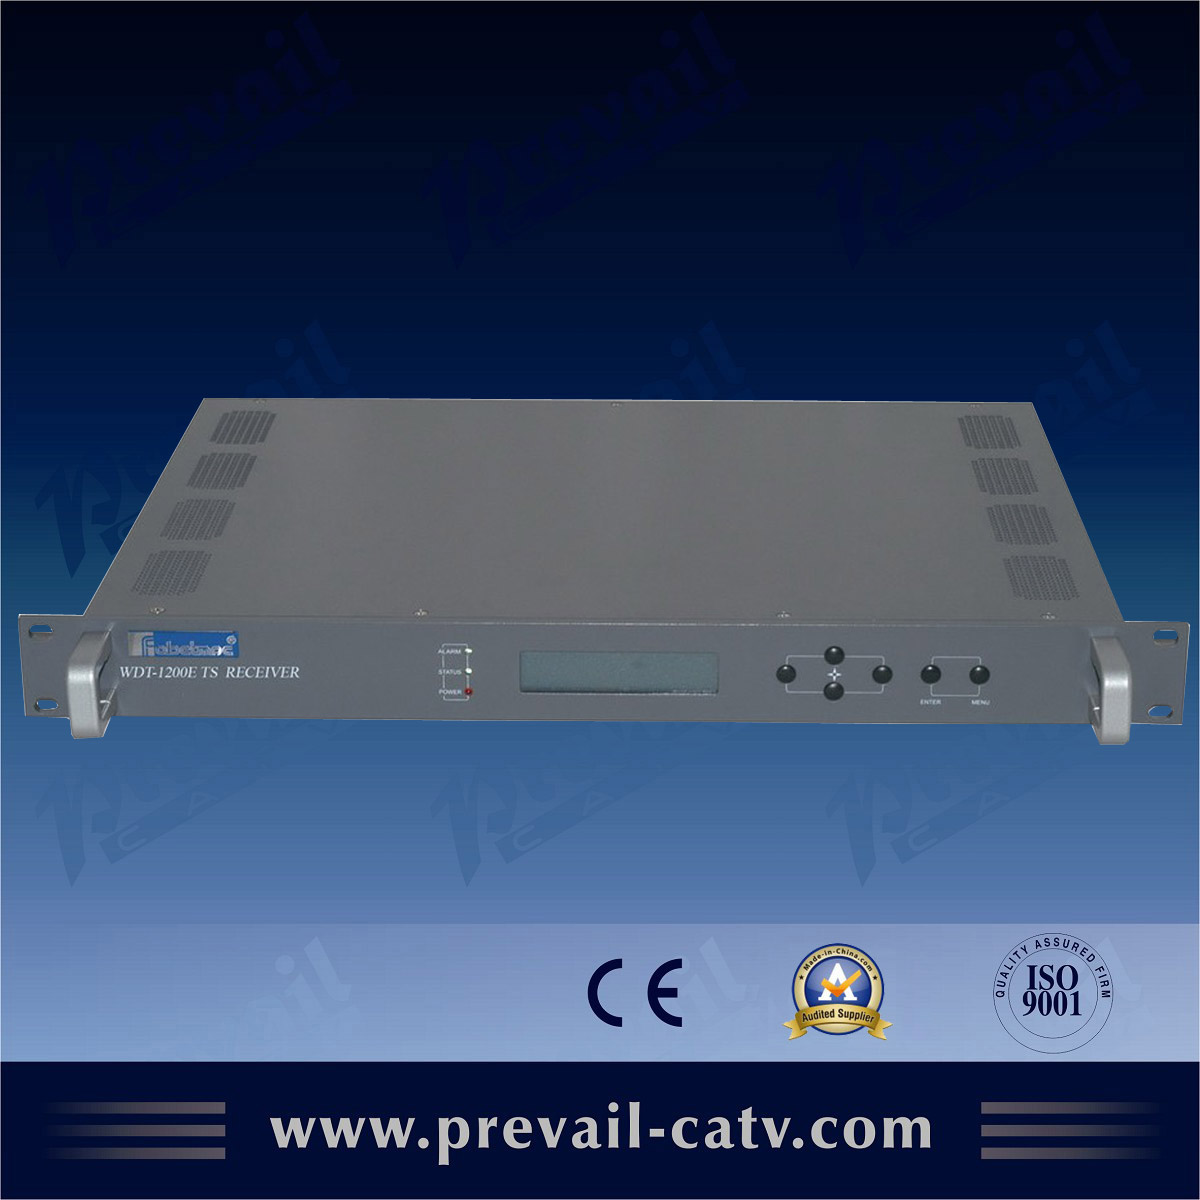 China Supplier biss key powervu satellite receiver freesat v7 hd